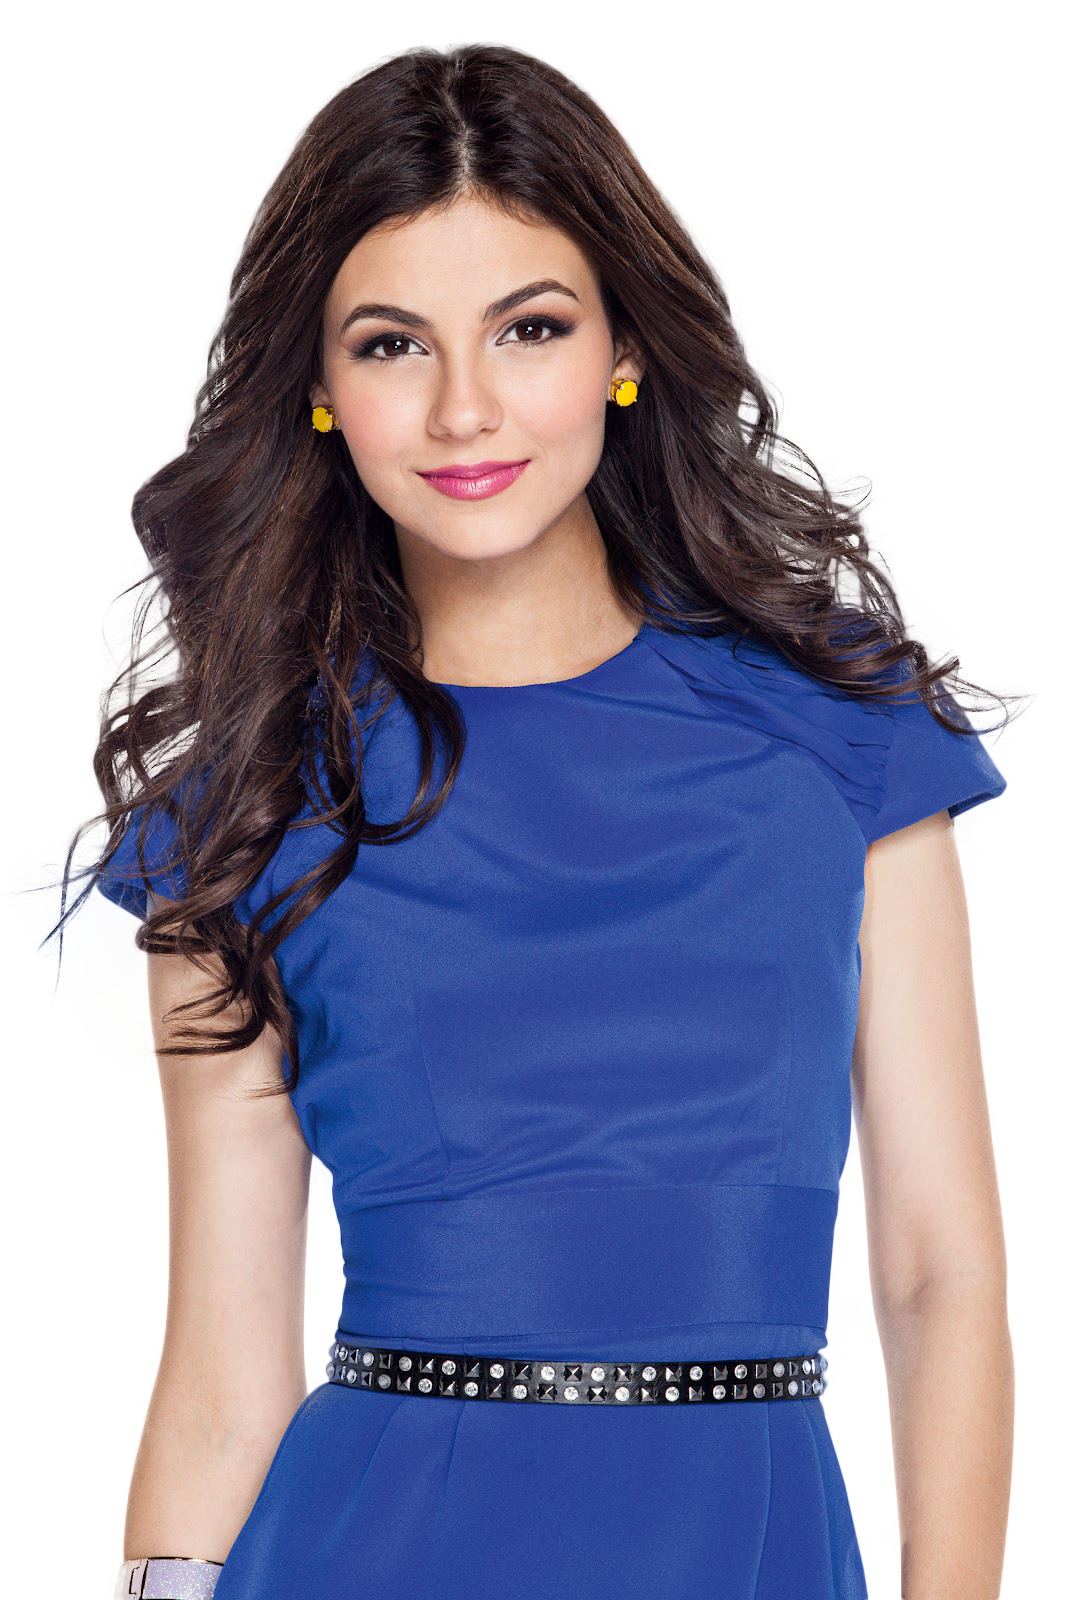 Download Victoria Justice PNG images transparent gallery. Advertisement.  Advertisement - Victoria Justice PNG